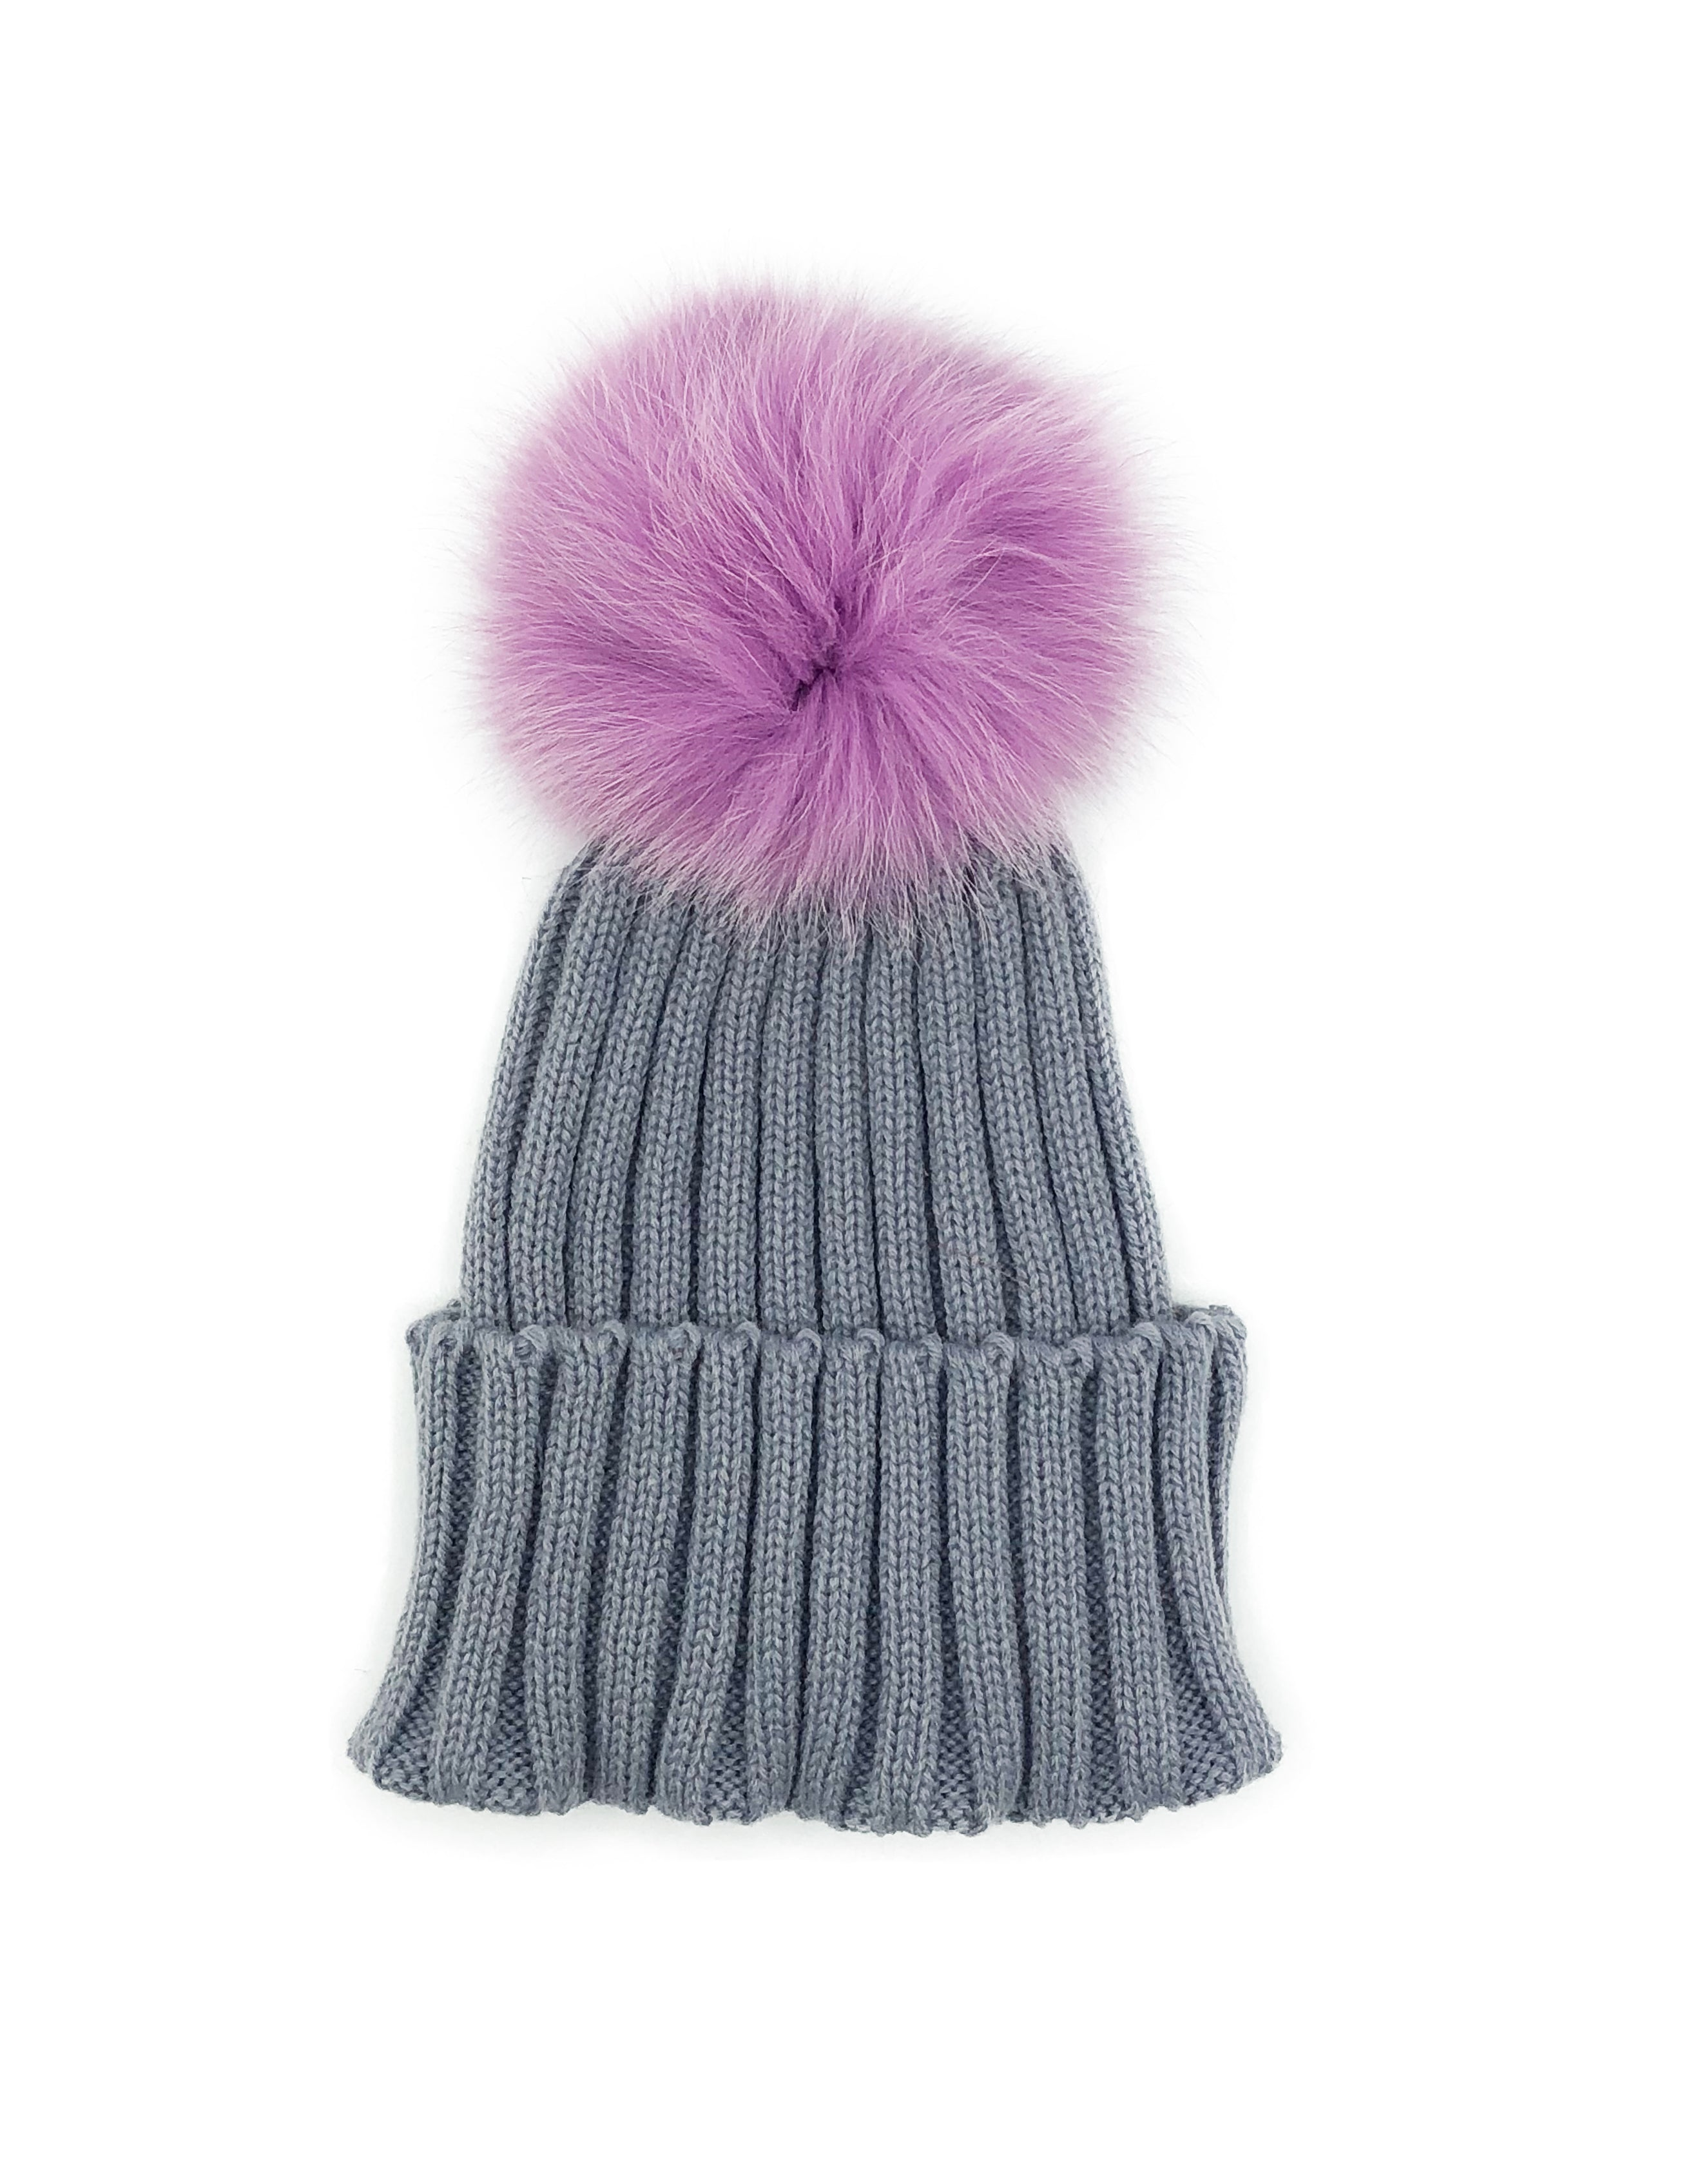 Knitted Beanie with Dyed Fox Fur Pom - paulamariecollection